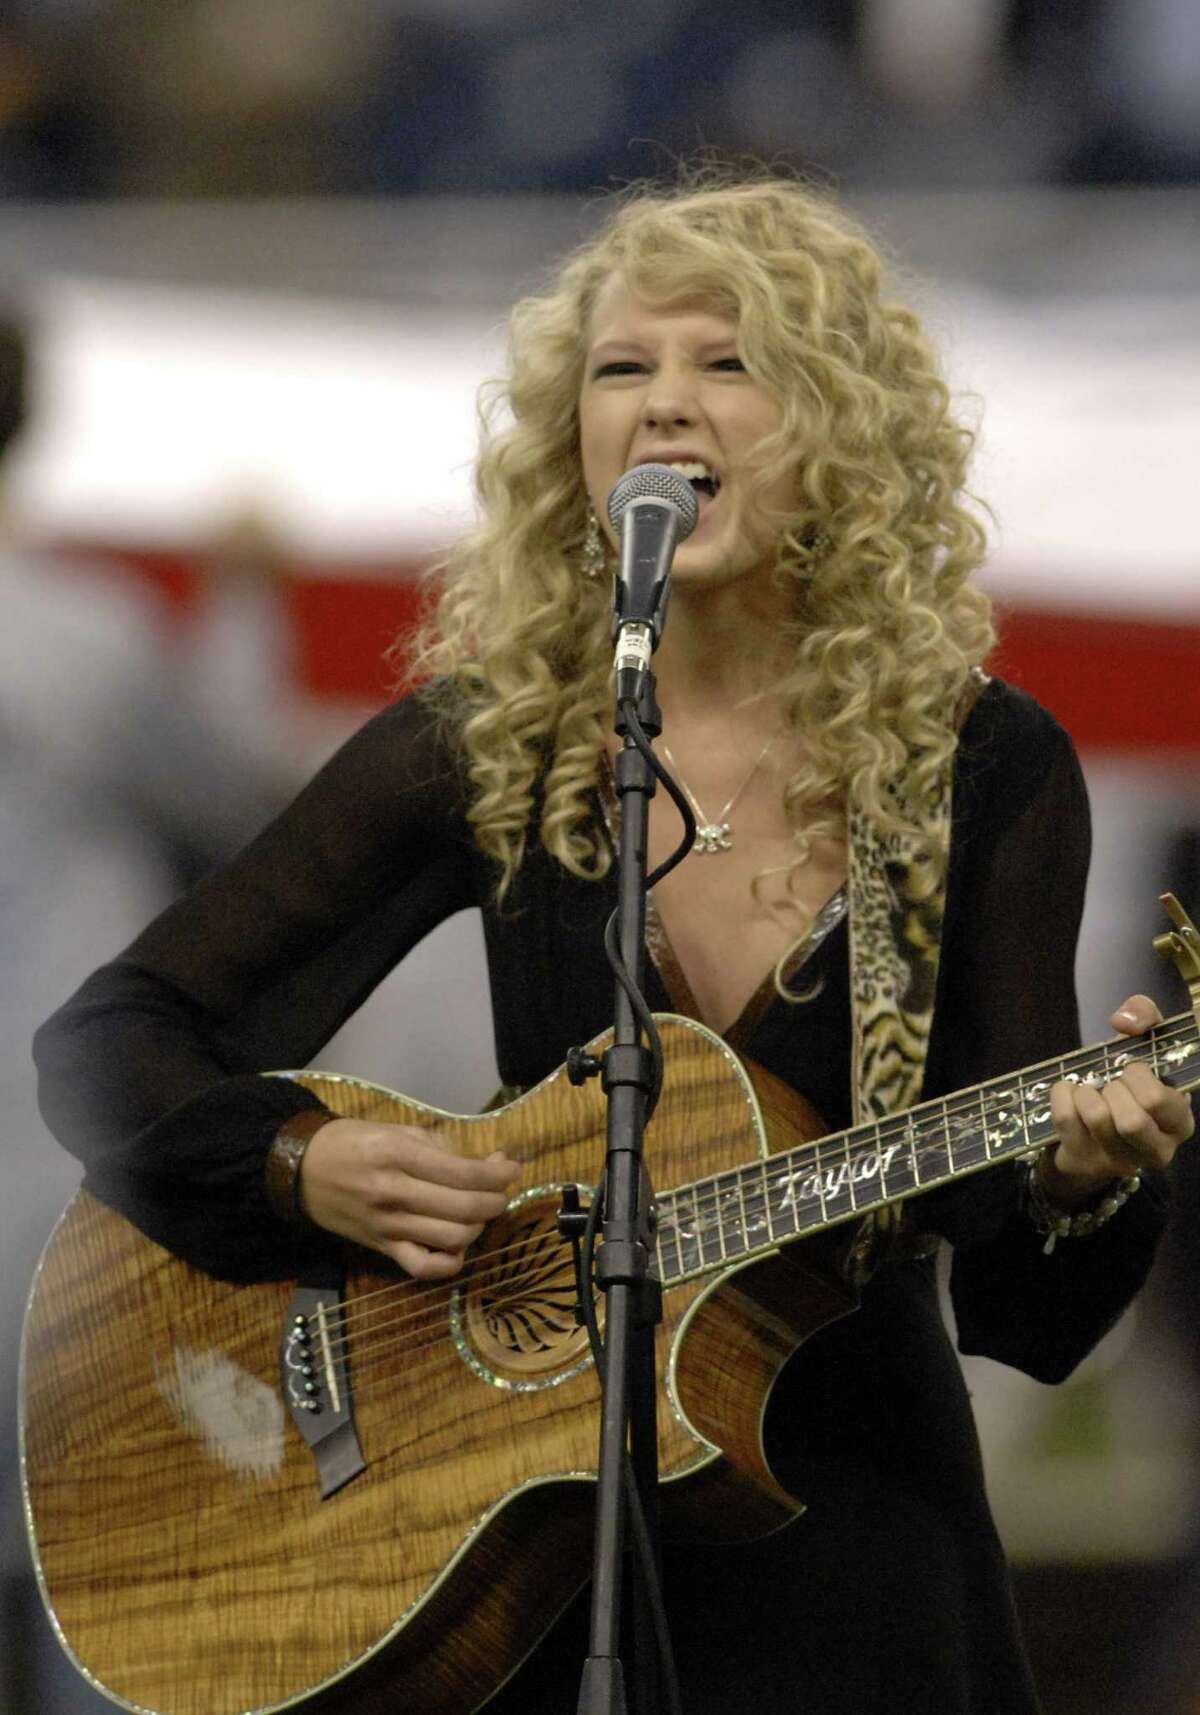 Taylor Swift was born on Dec. 31, 1989 in Reading, Penn. One of her first gigs was singing the National Anthem at age 12 at a Philadelphia 76ers game in 2002. She's pictured at age 16 in November of 2006.